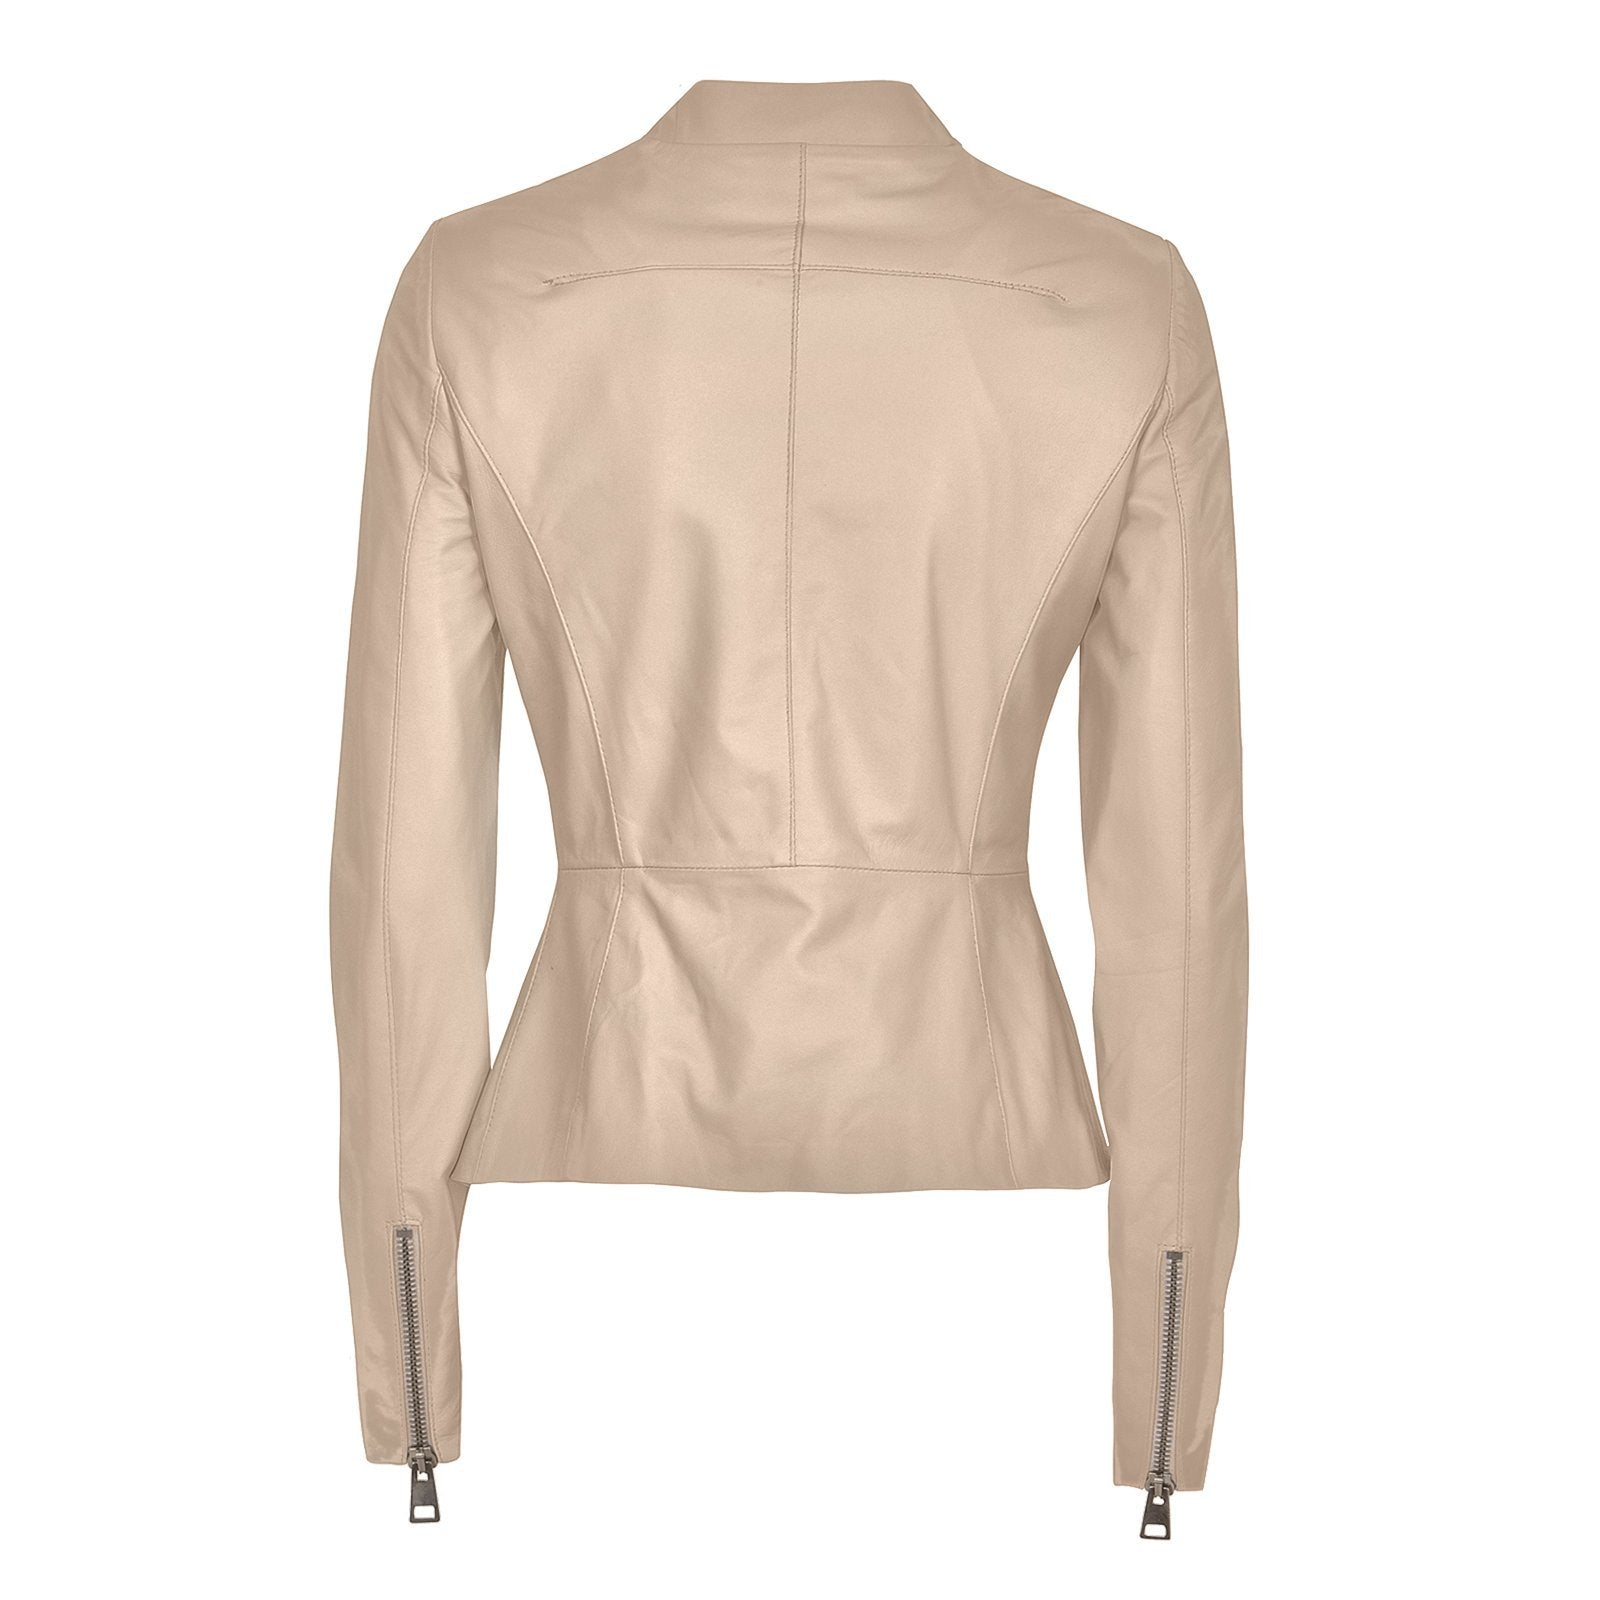 Custom Made Women's White Leather Jacket, Made in Italy